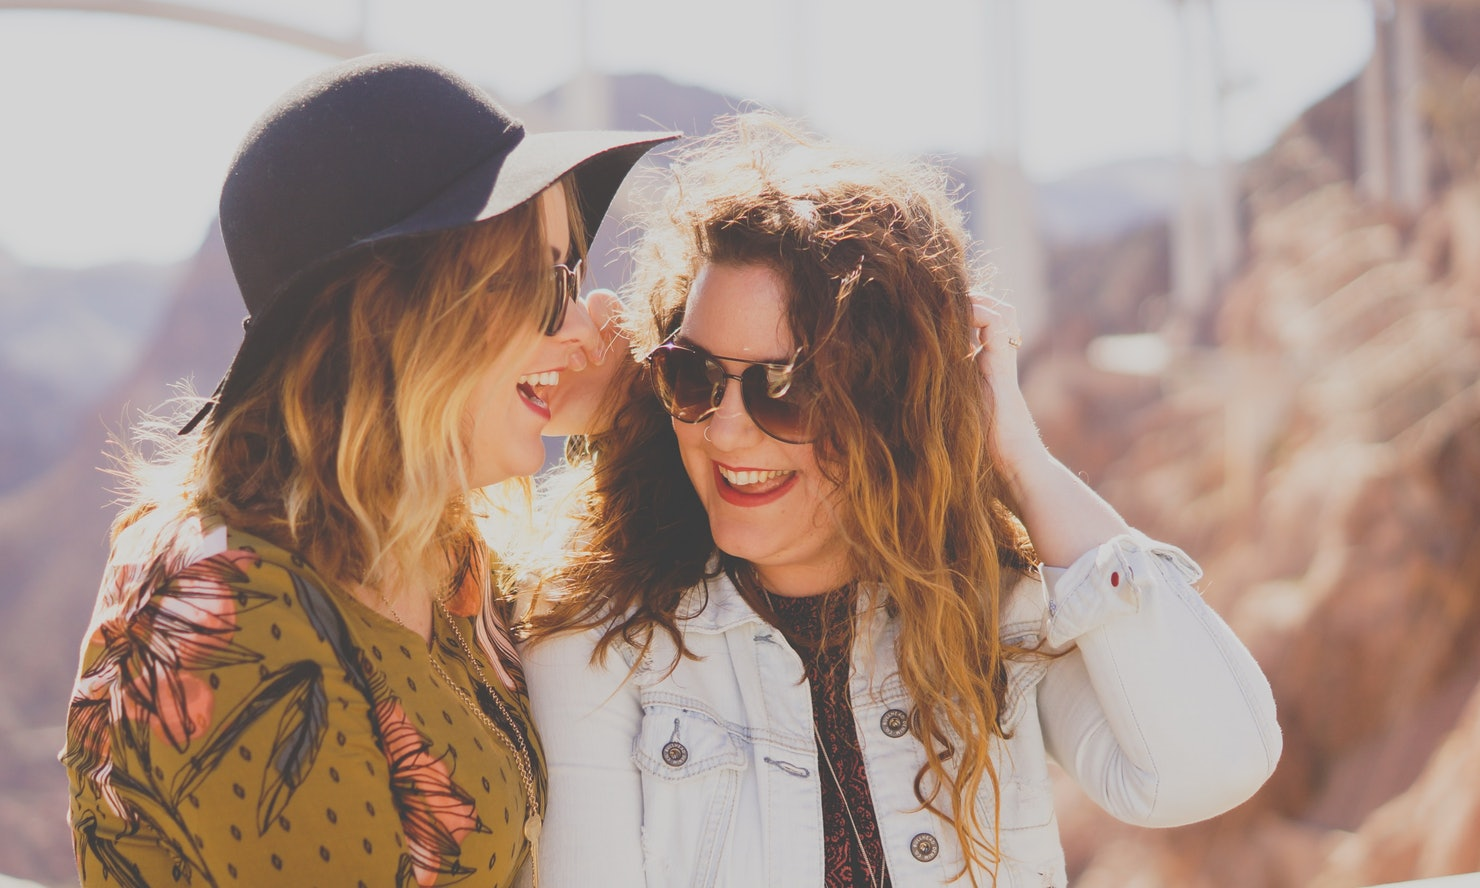 15 Little Signs You Aren't Being Fully Authentic Every Day